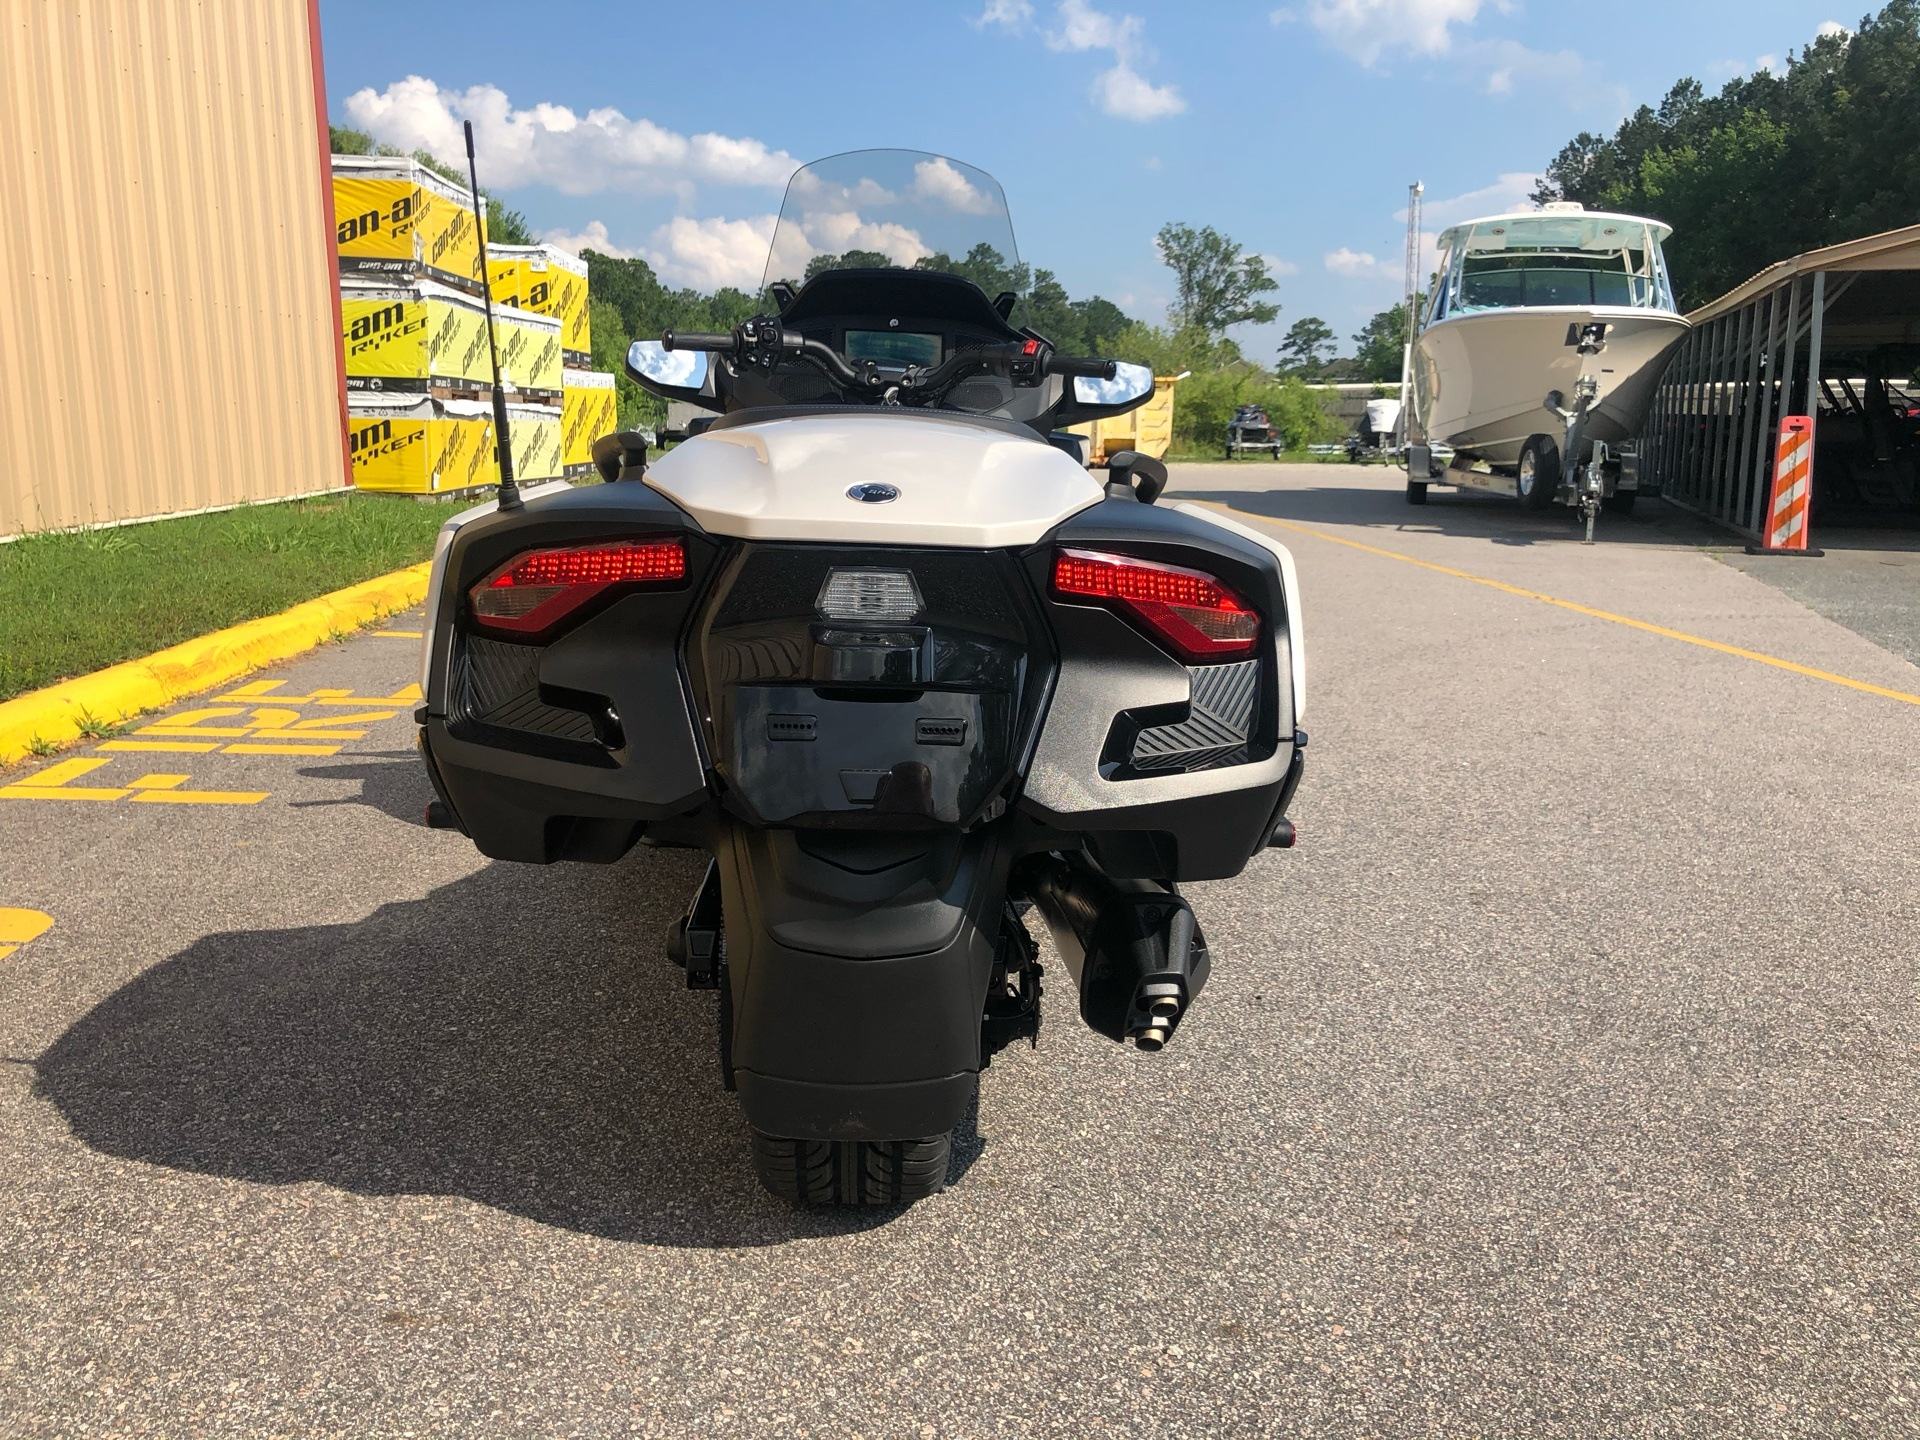 2020 Can-Am Spyder RT in Chesapeake, Virginia - Photo 8